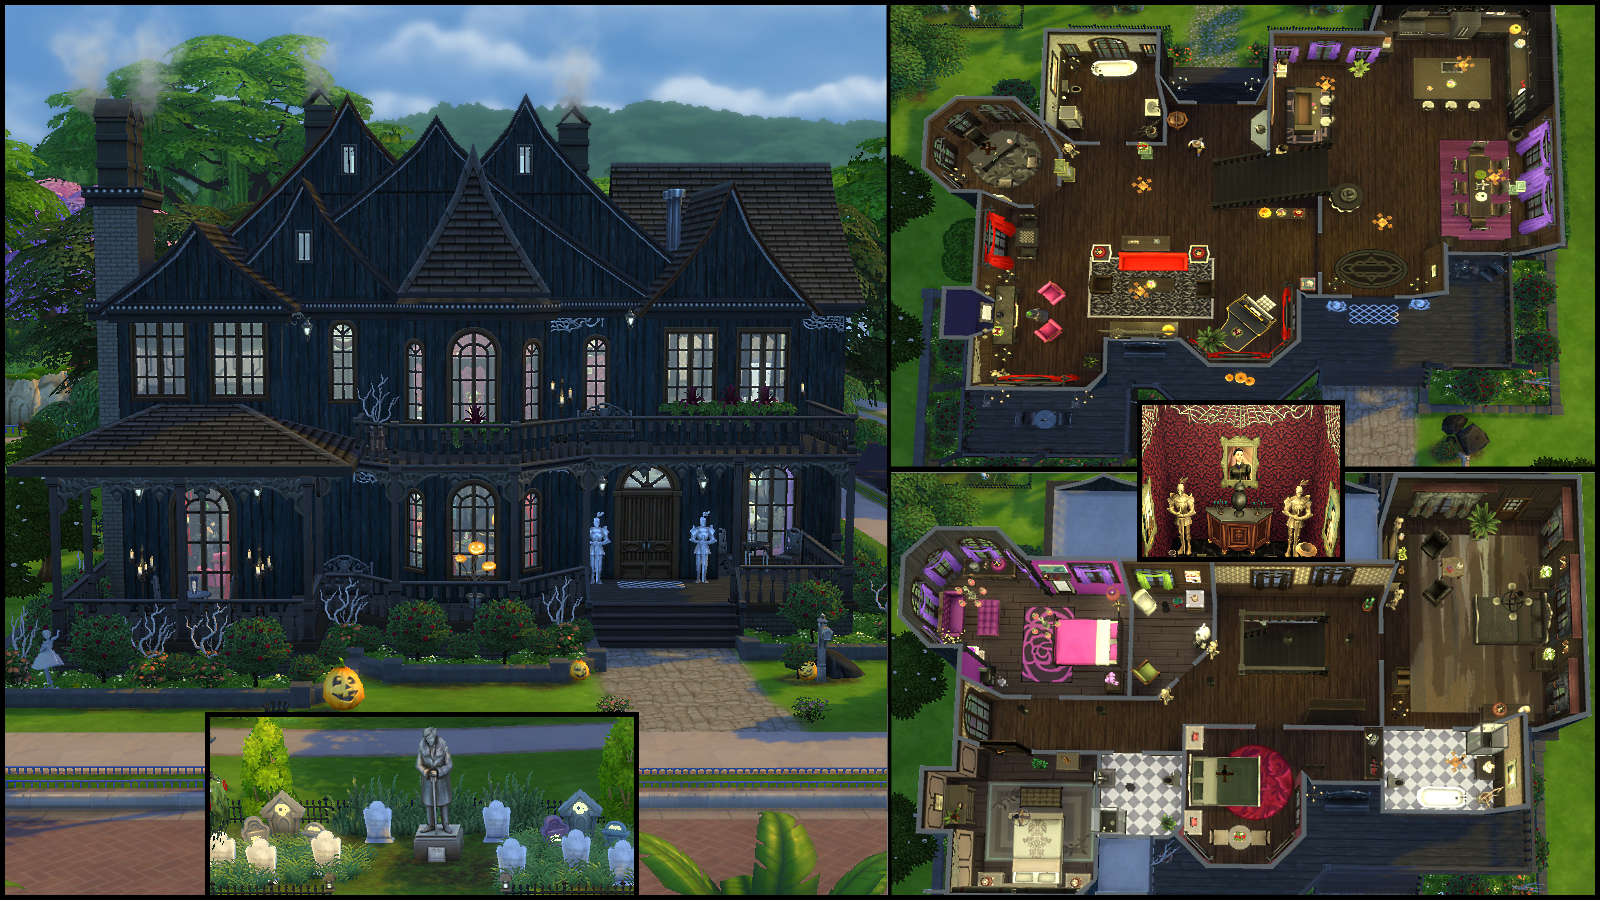 The sims 4 mansion floor plans for Mansion floor plans sims 4